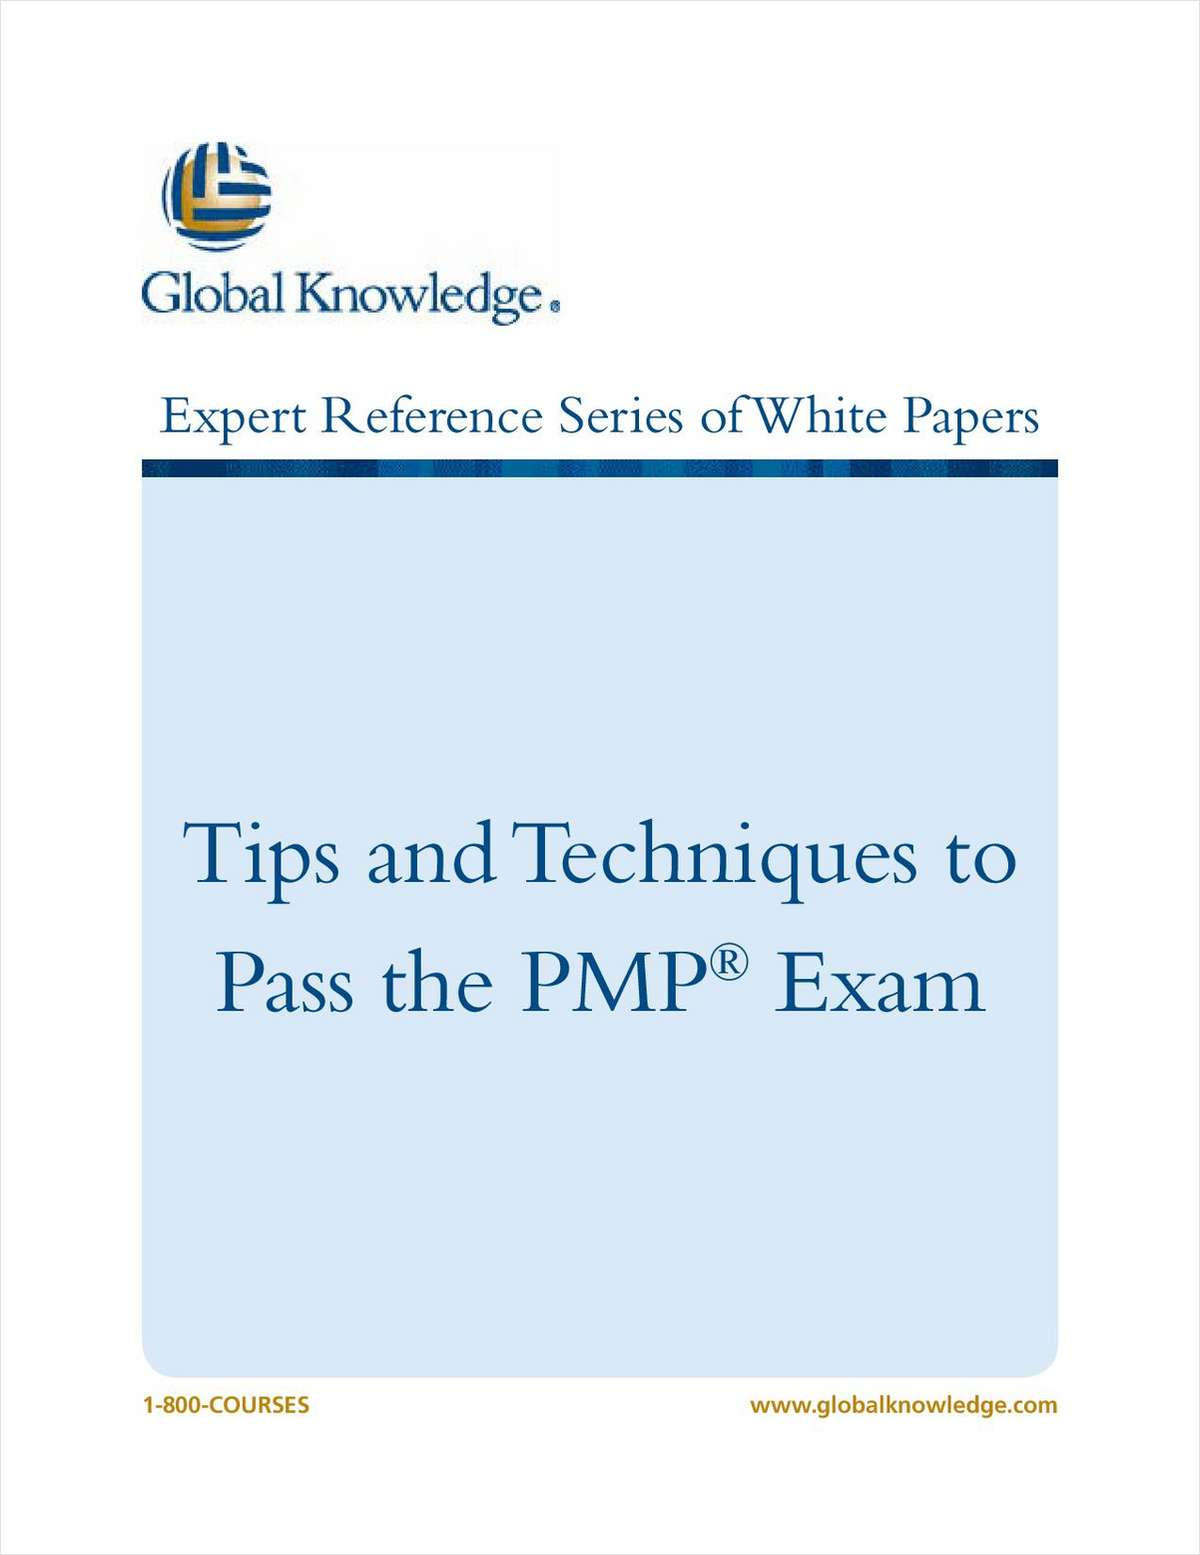 Tips and Techniques to Pass the PMP® Exam